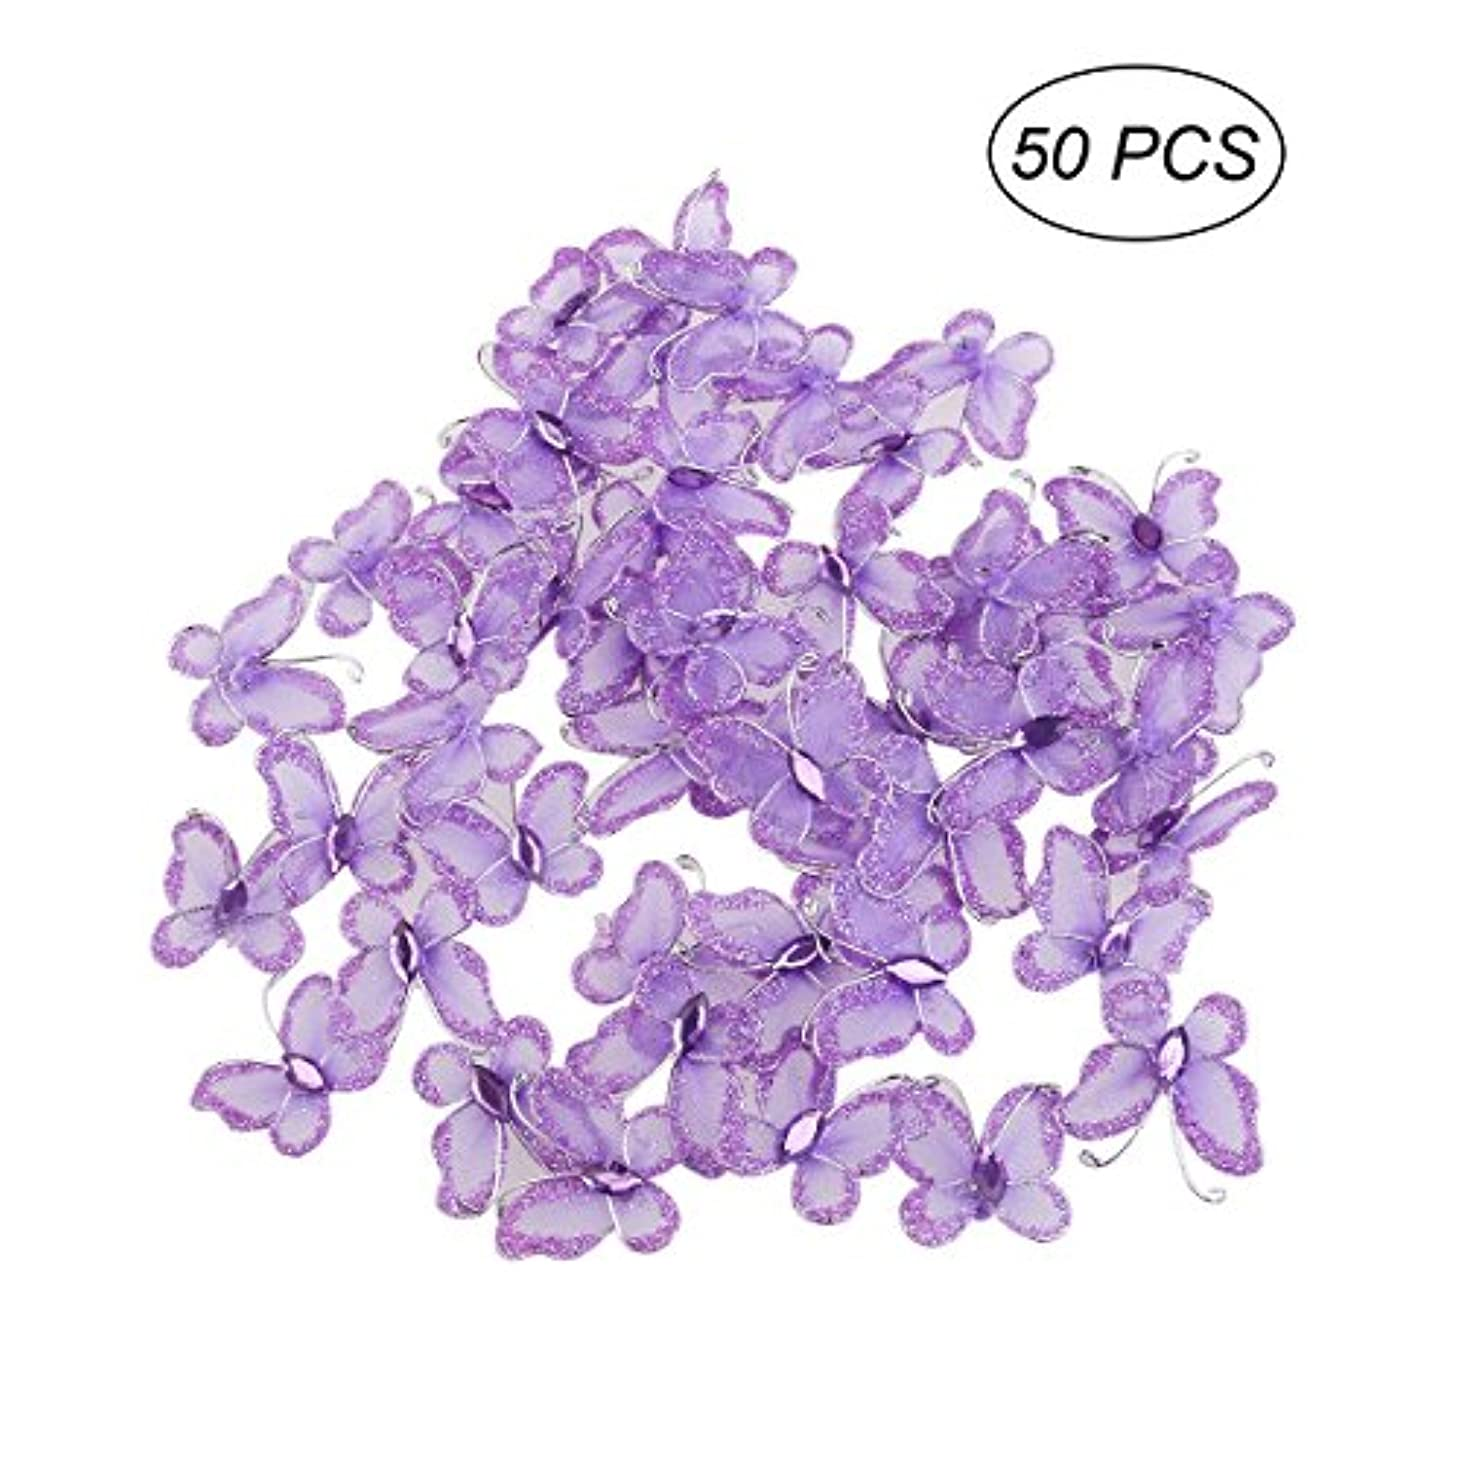 TOYMYTOY Butterfly Decoration, 3D Glitter Wall Decoration for Nursery Room, Girl's Bedroom, Wedding and Birthday Party - 50pcs(Purple)